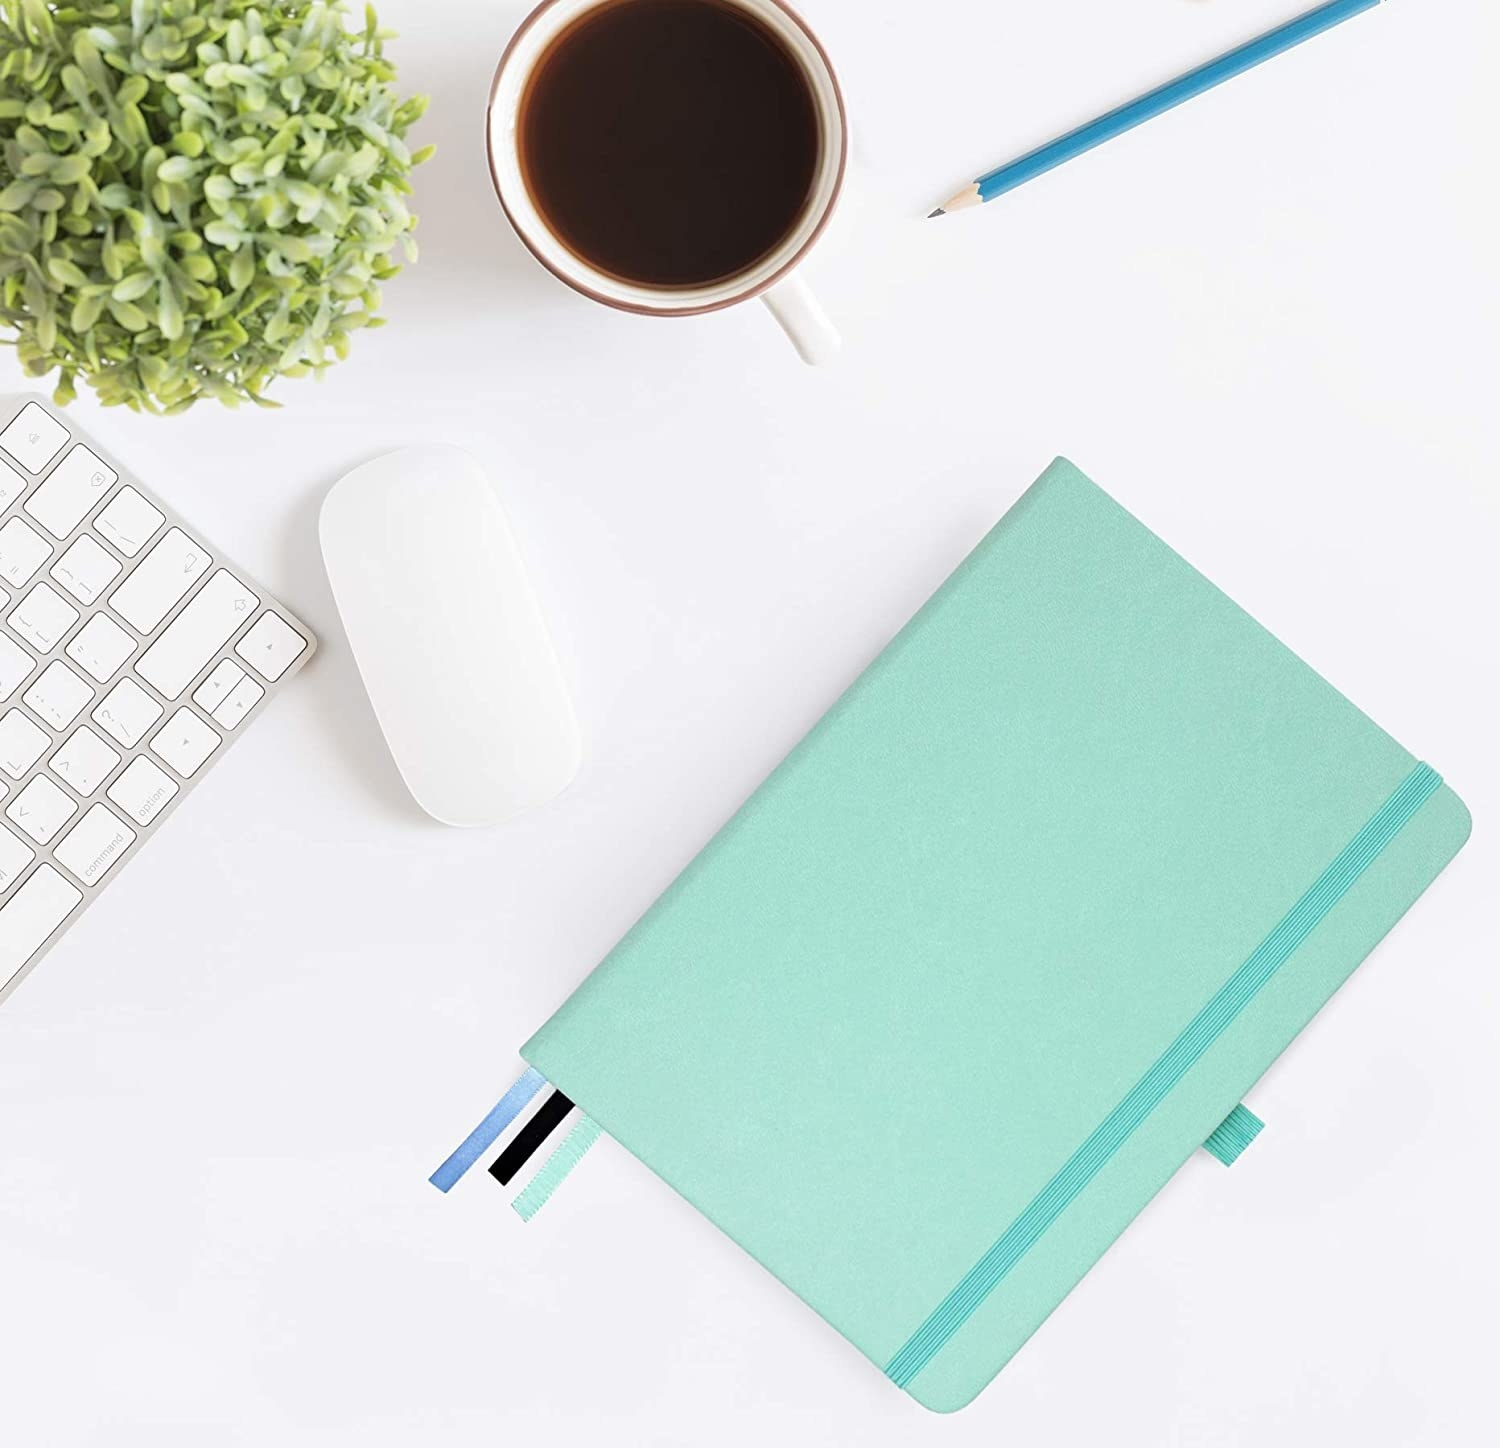 A notebook next to a mouse and keyboard